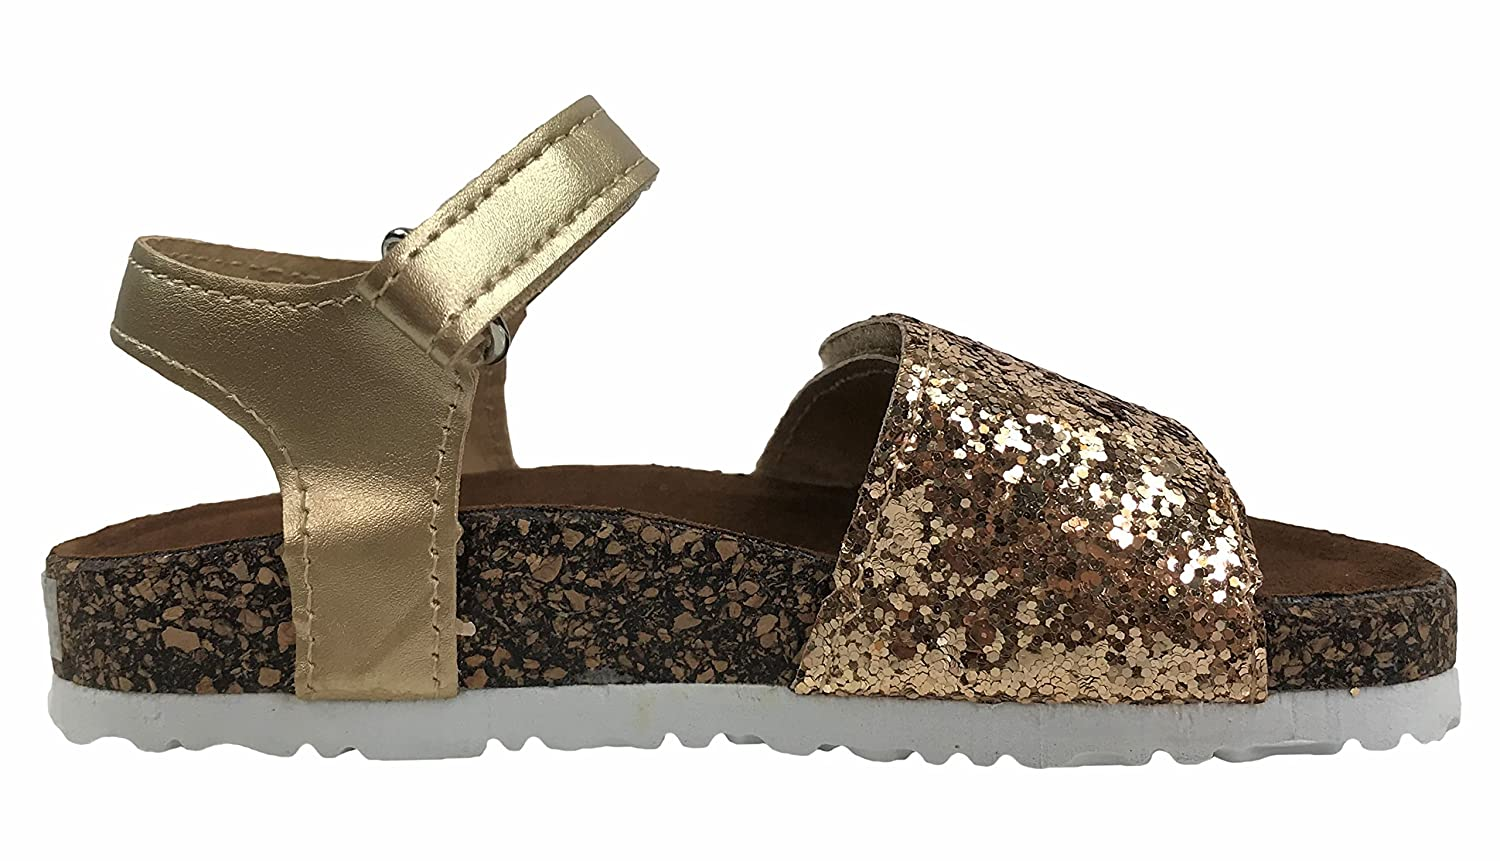 Toddler Infant Kids Basic Summer Wedge Sandals Toddler Infant Kids Basic Summer Wedge Sandals Bethany-2 Gold 5 Girls